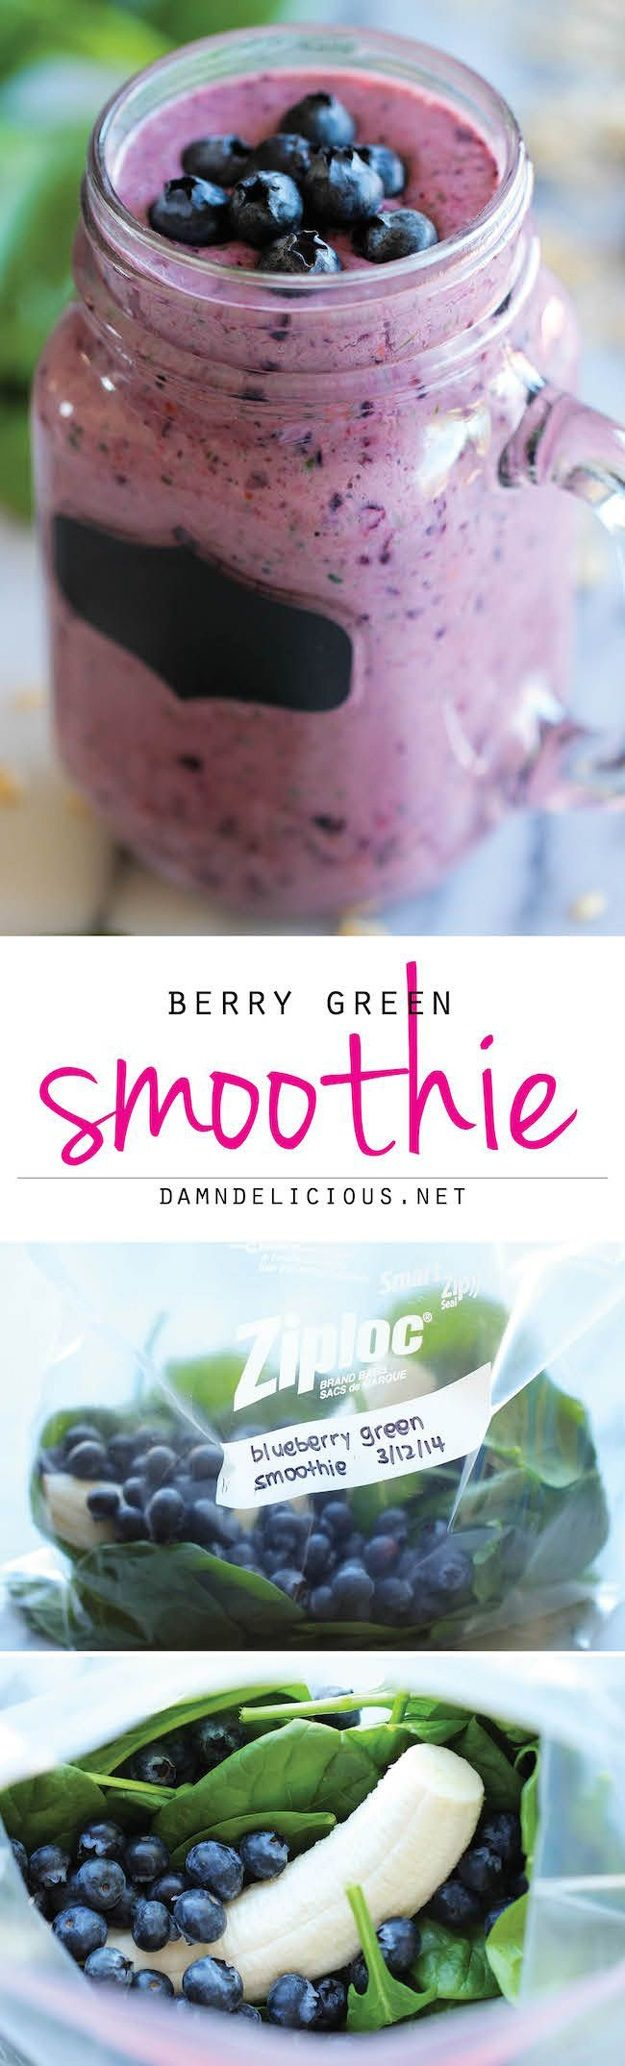 Another fun smoothie recipe to try in order to eat healthy in college while trying new things.